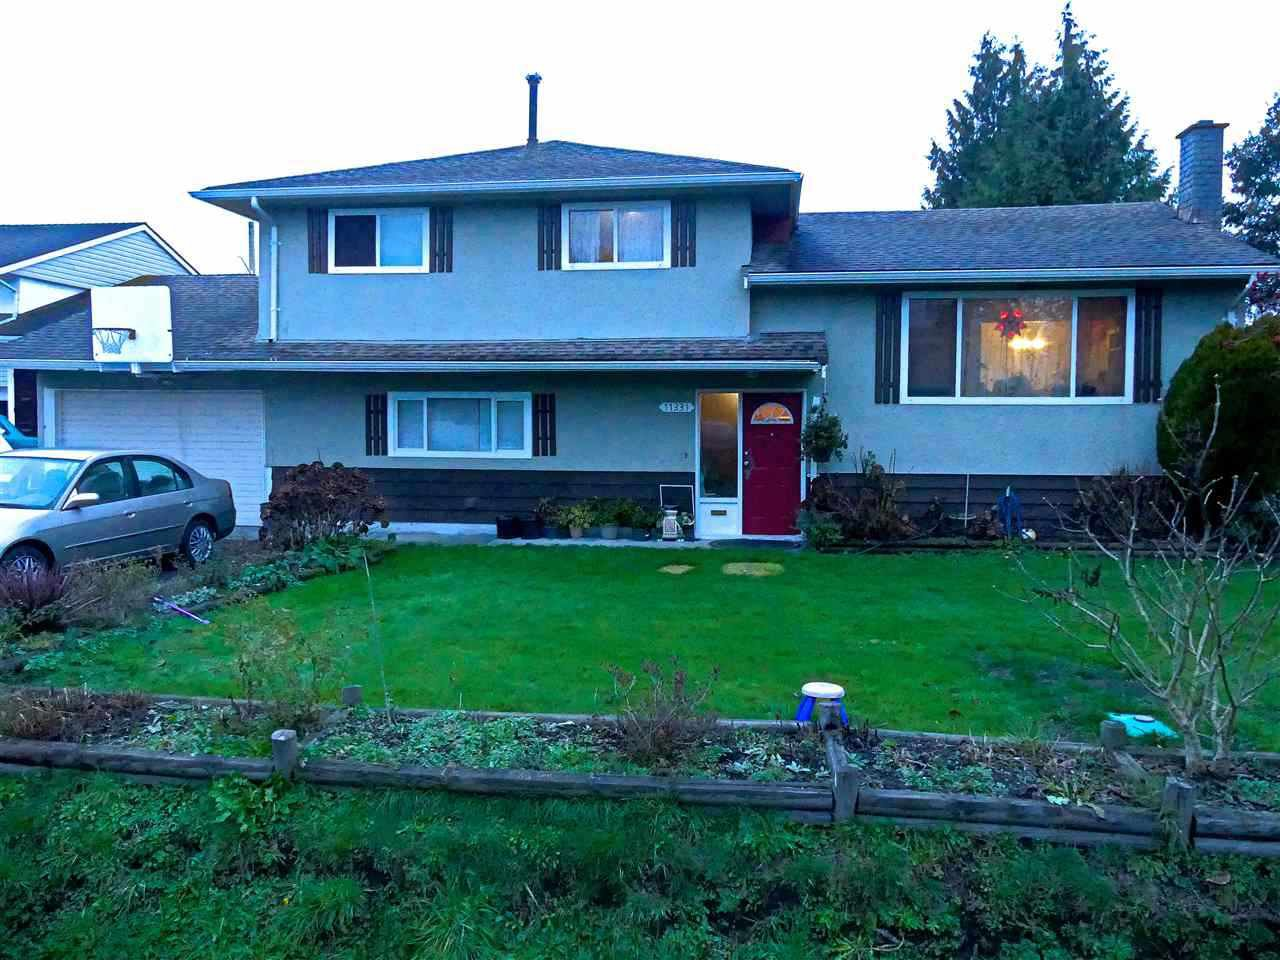 """Main Photo: 11331 SEAFIELD Crescent in Richmond: Ironwood House for sale in """"Ironwood"""" : MLS®# R2352963"""